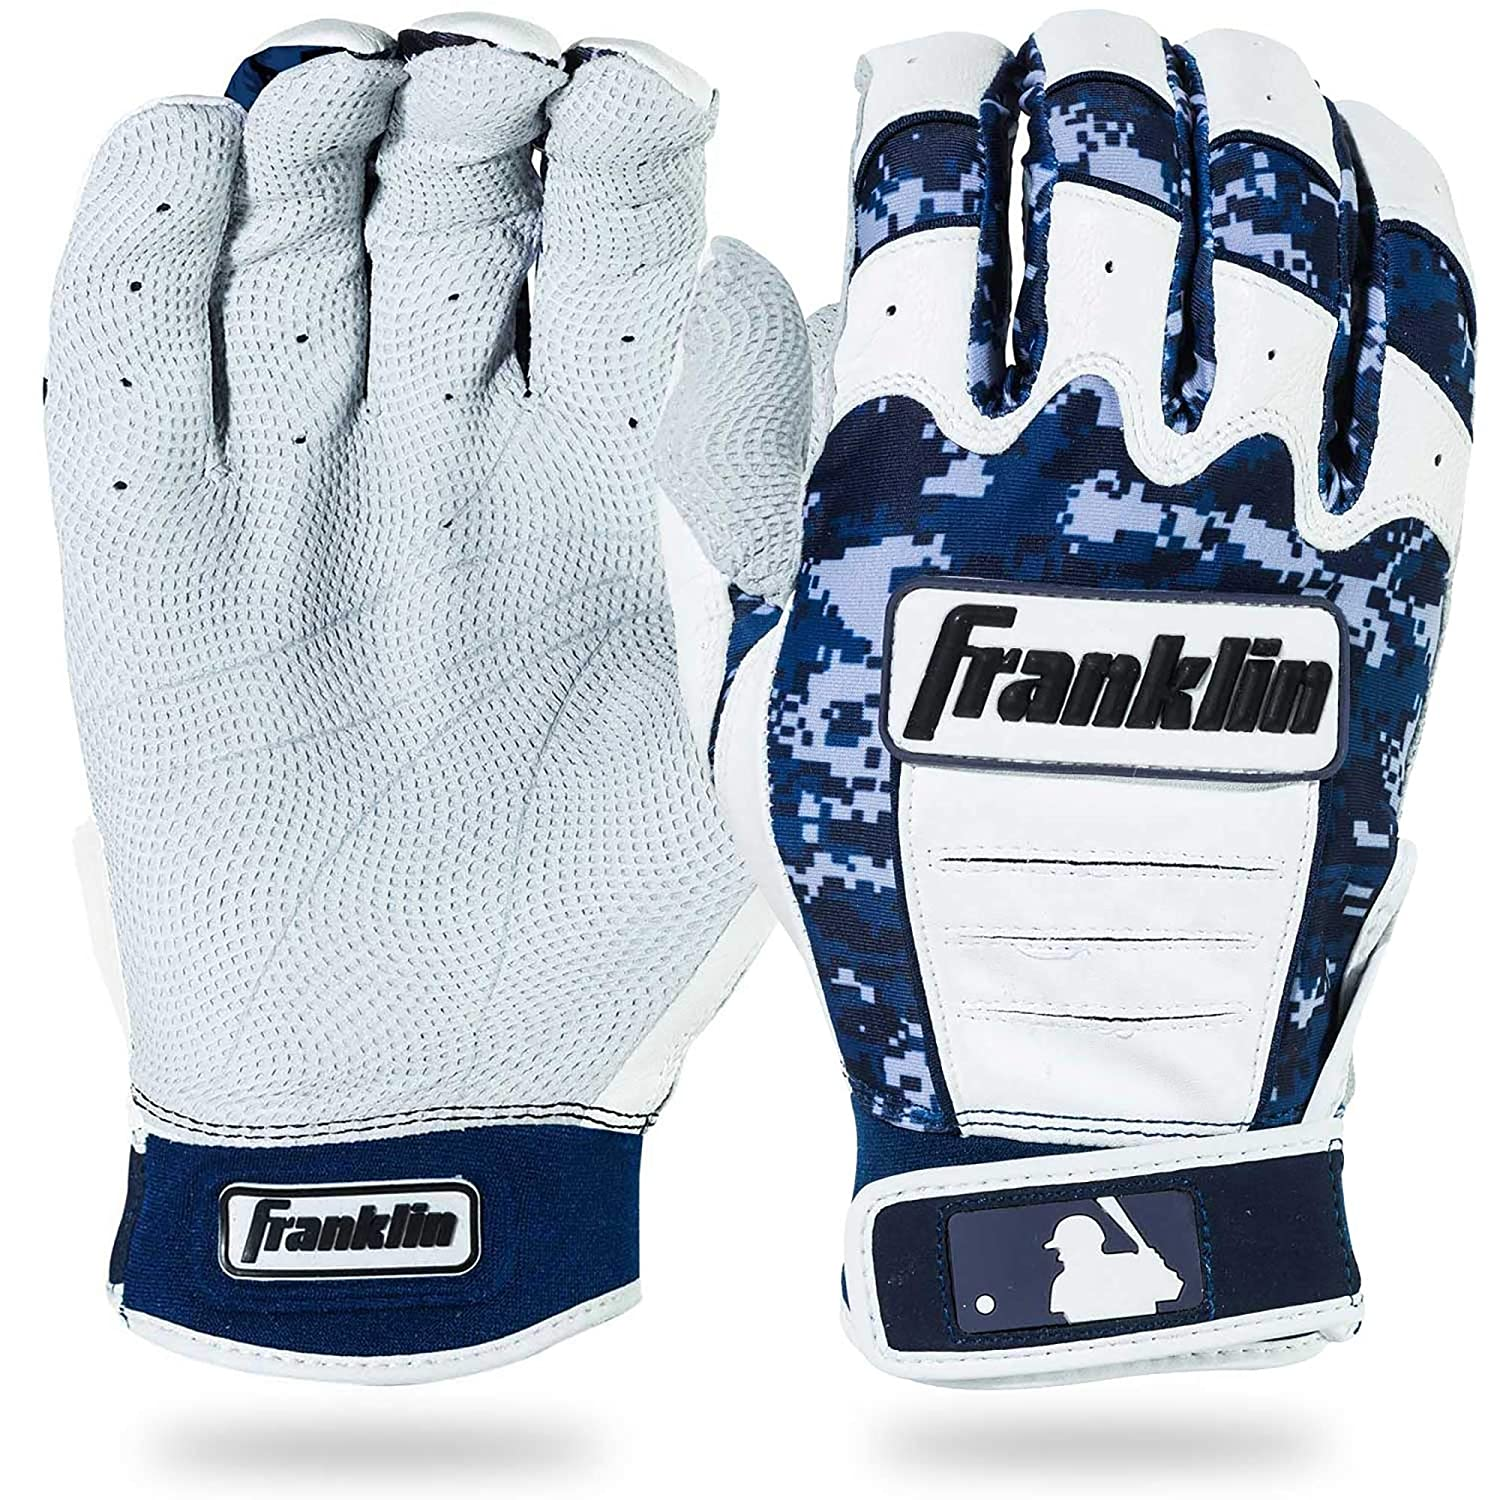 Digi Series MLB Batting Gloves  Navy//Navy Digi Camo Franklin Youth CFX Pro